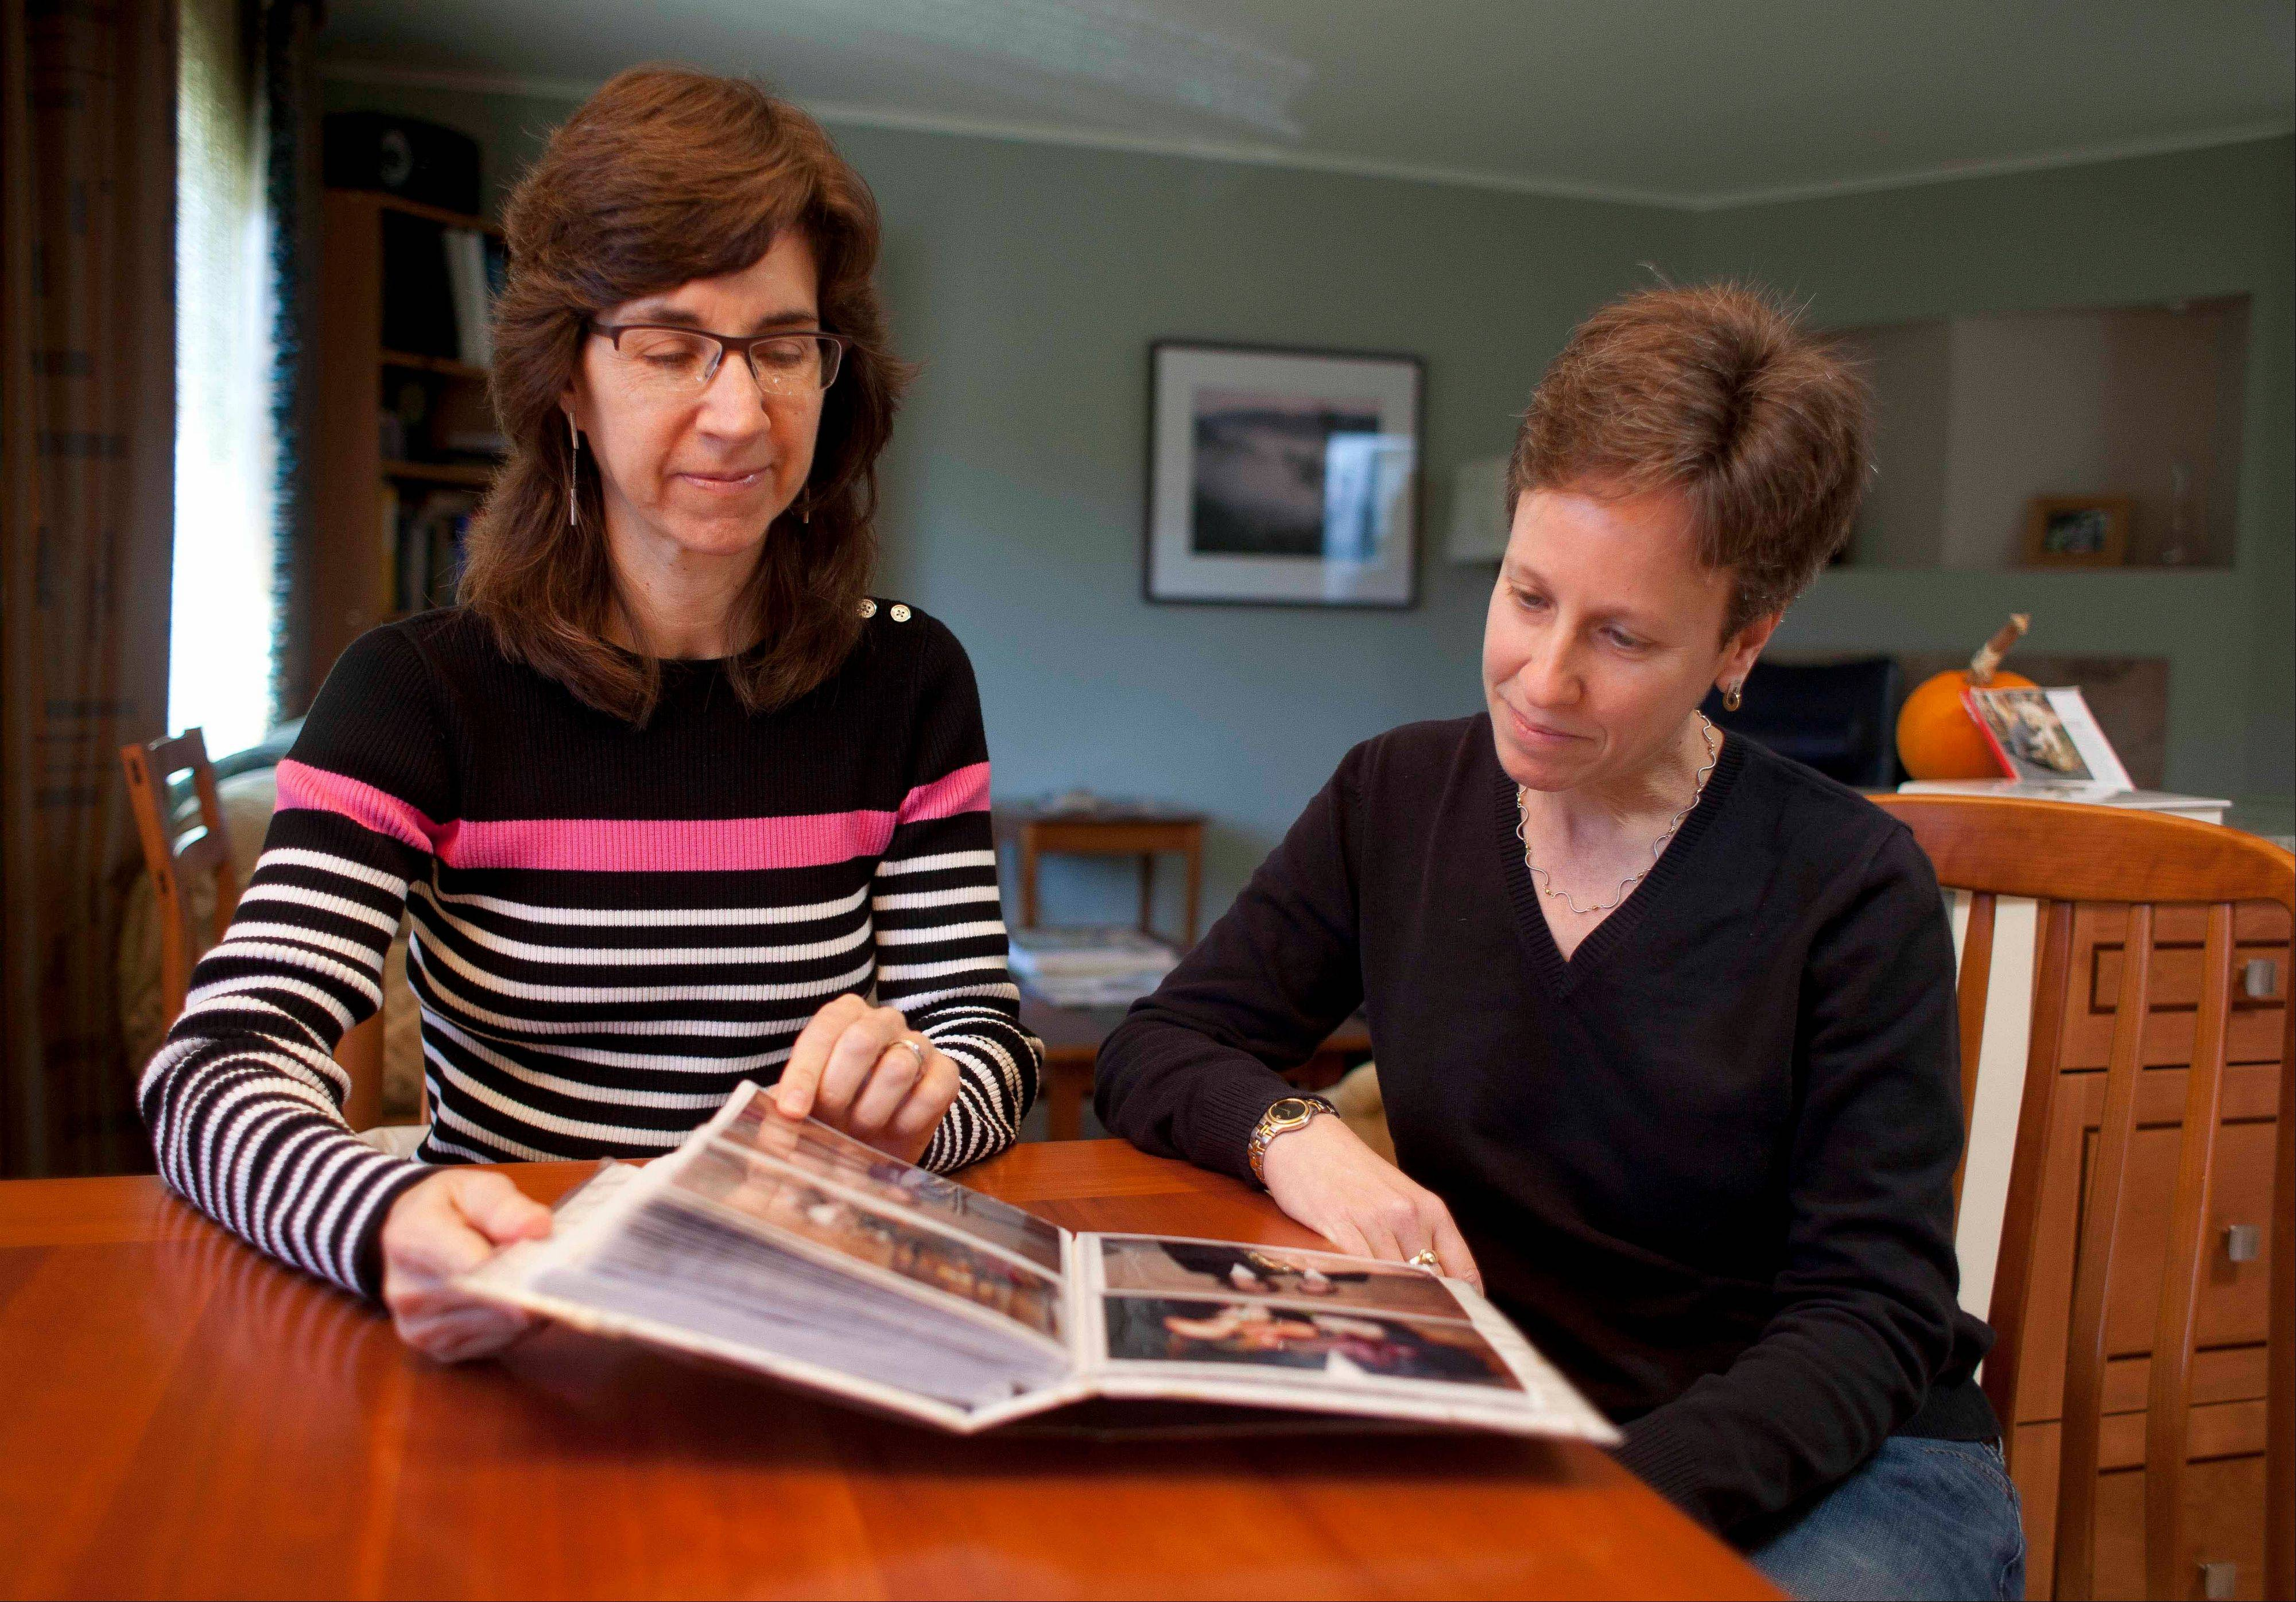 Karen Golinski, left, and Amy Cunninghis, look over a photo album of their wedding photos in San Francisco. All Golinski wanted was to enroll her spouse in her employer-sponsored health plan. Four years later, her request still is being debated.